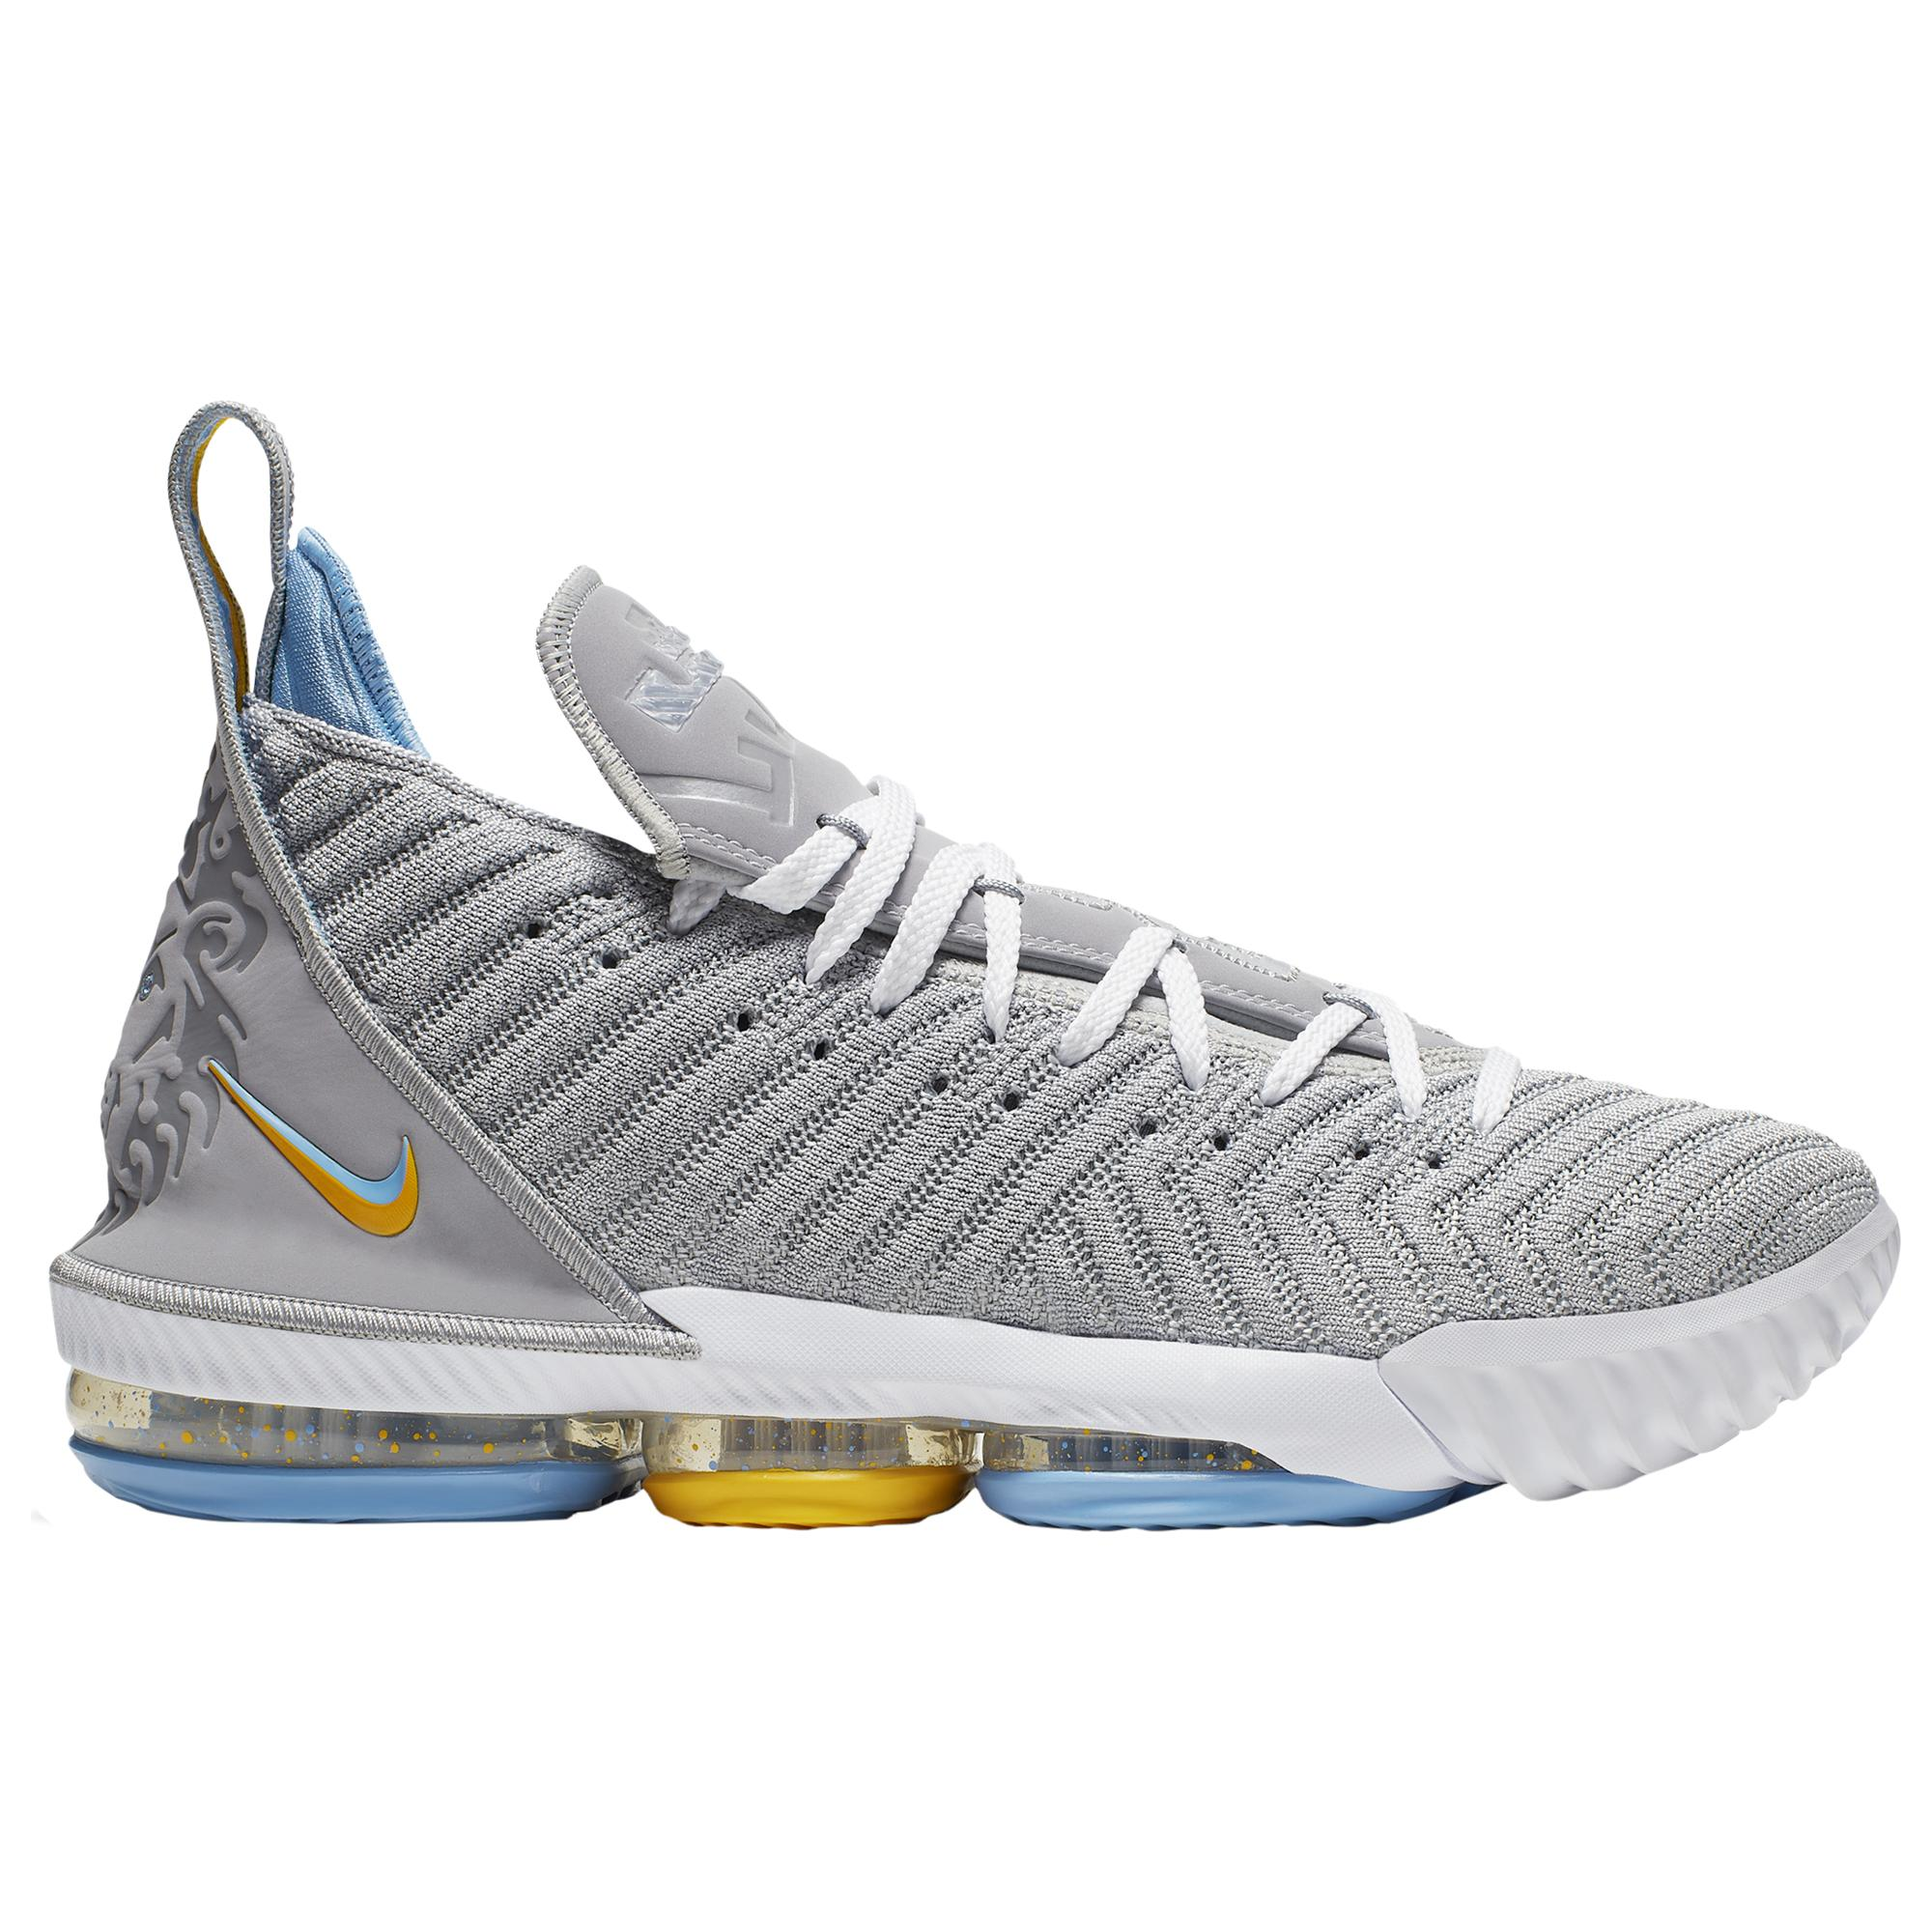 Nike Lace Lebron 16 Basketball Shoes in Gray for Men - Lyst